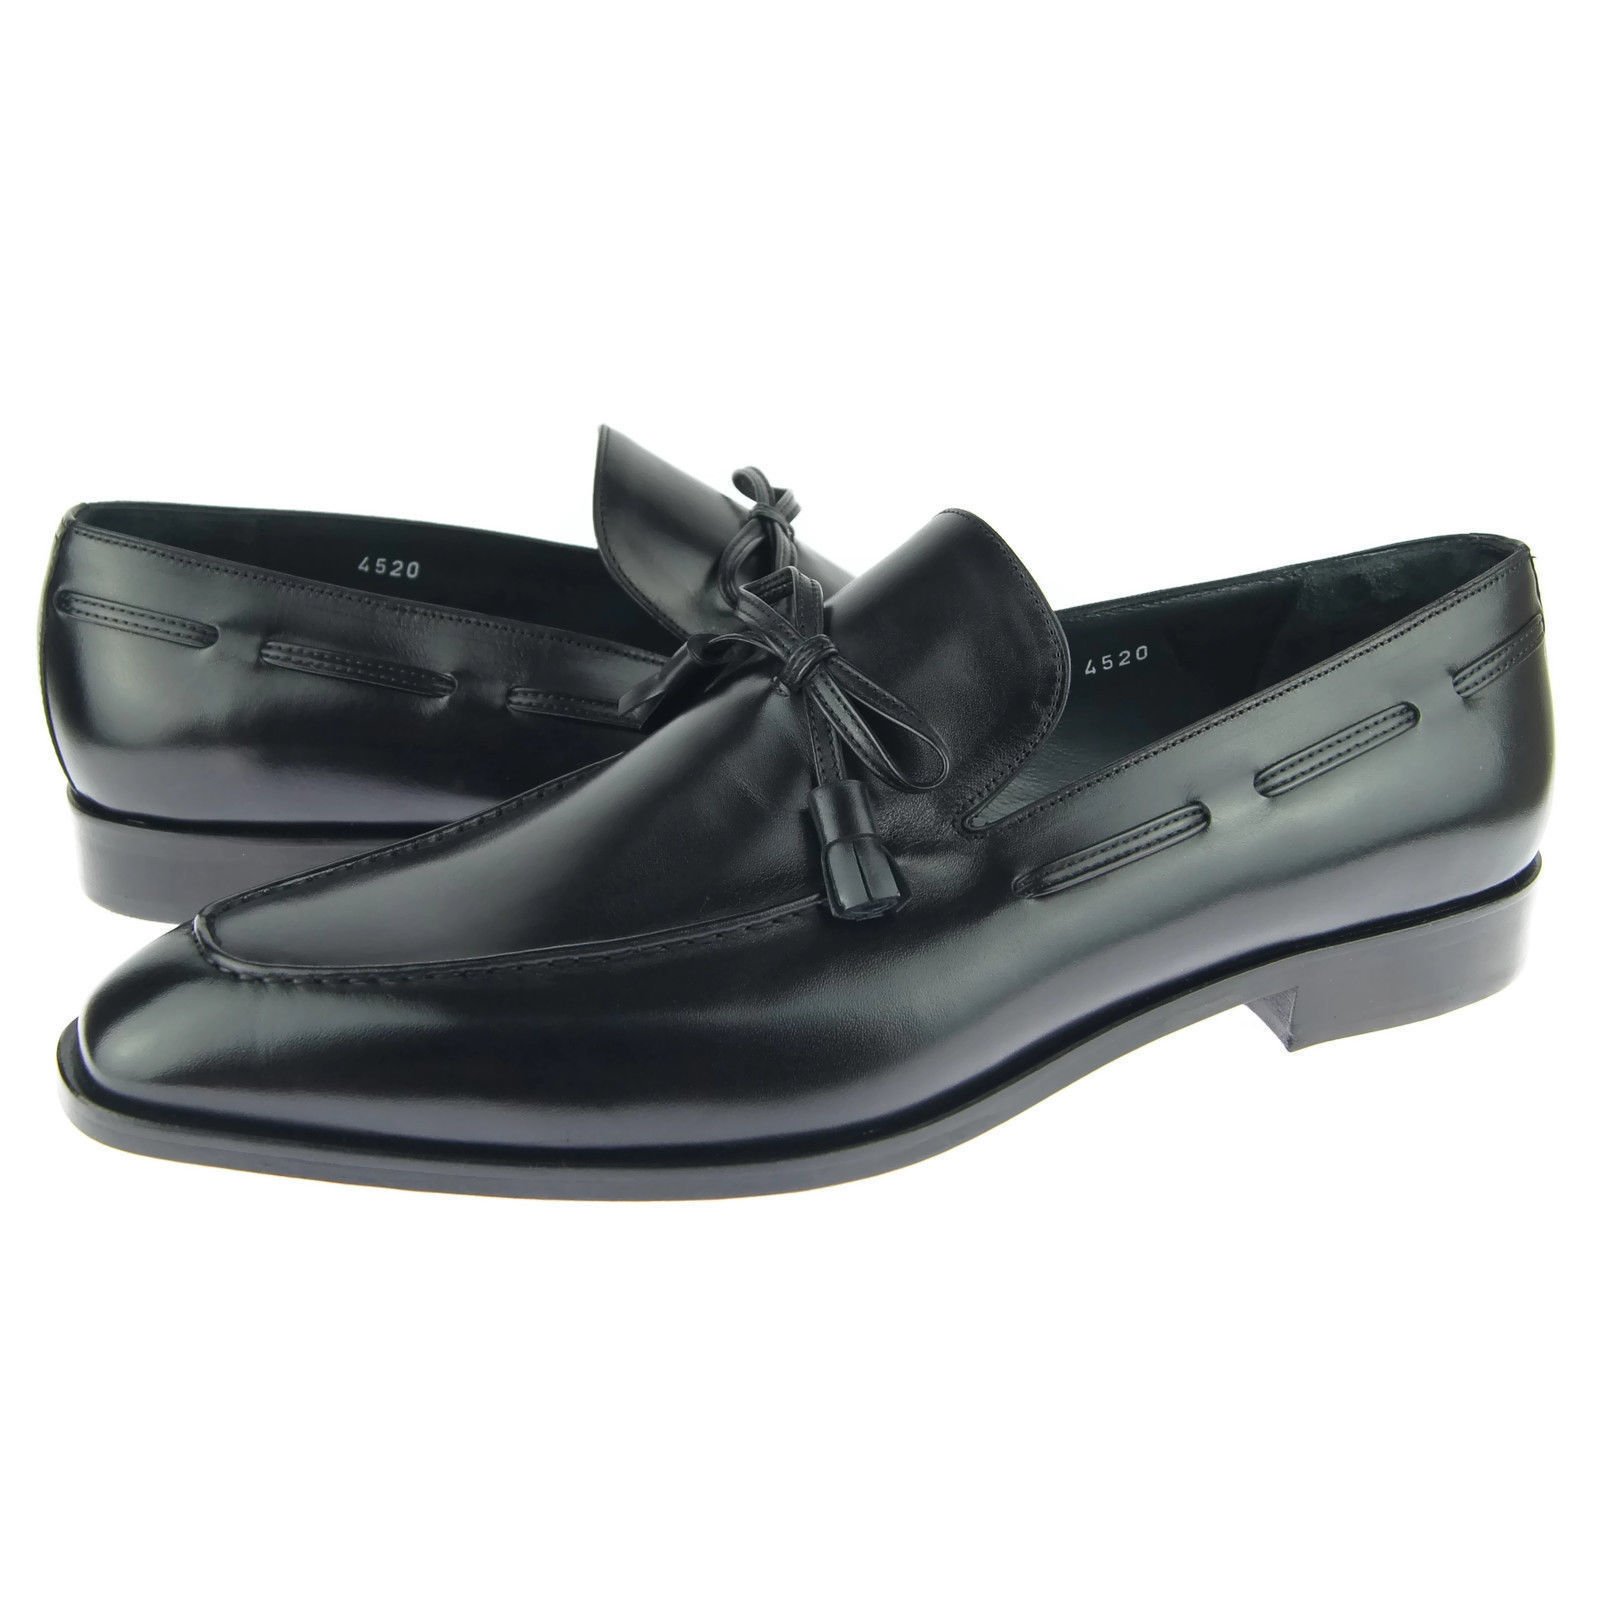 Men Black Color Pointed Apron Toe Handmade Premium Leather Loafers Stylish Shoes